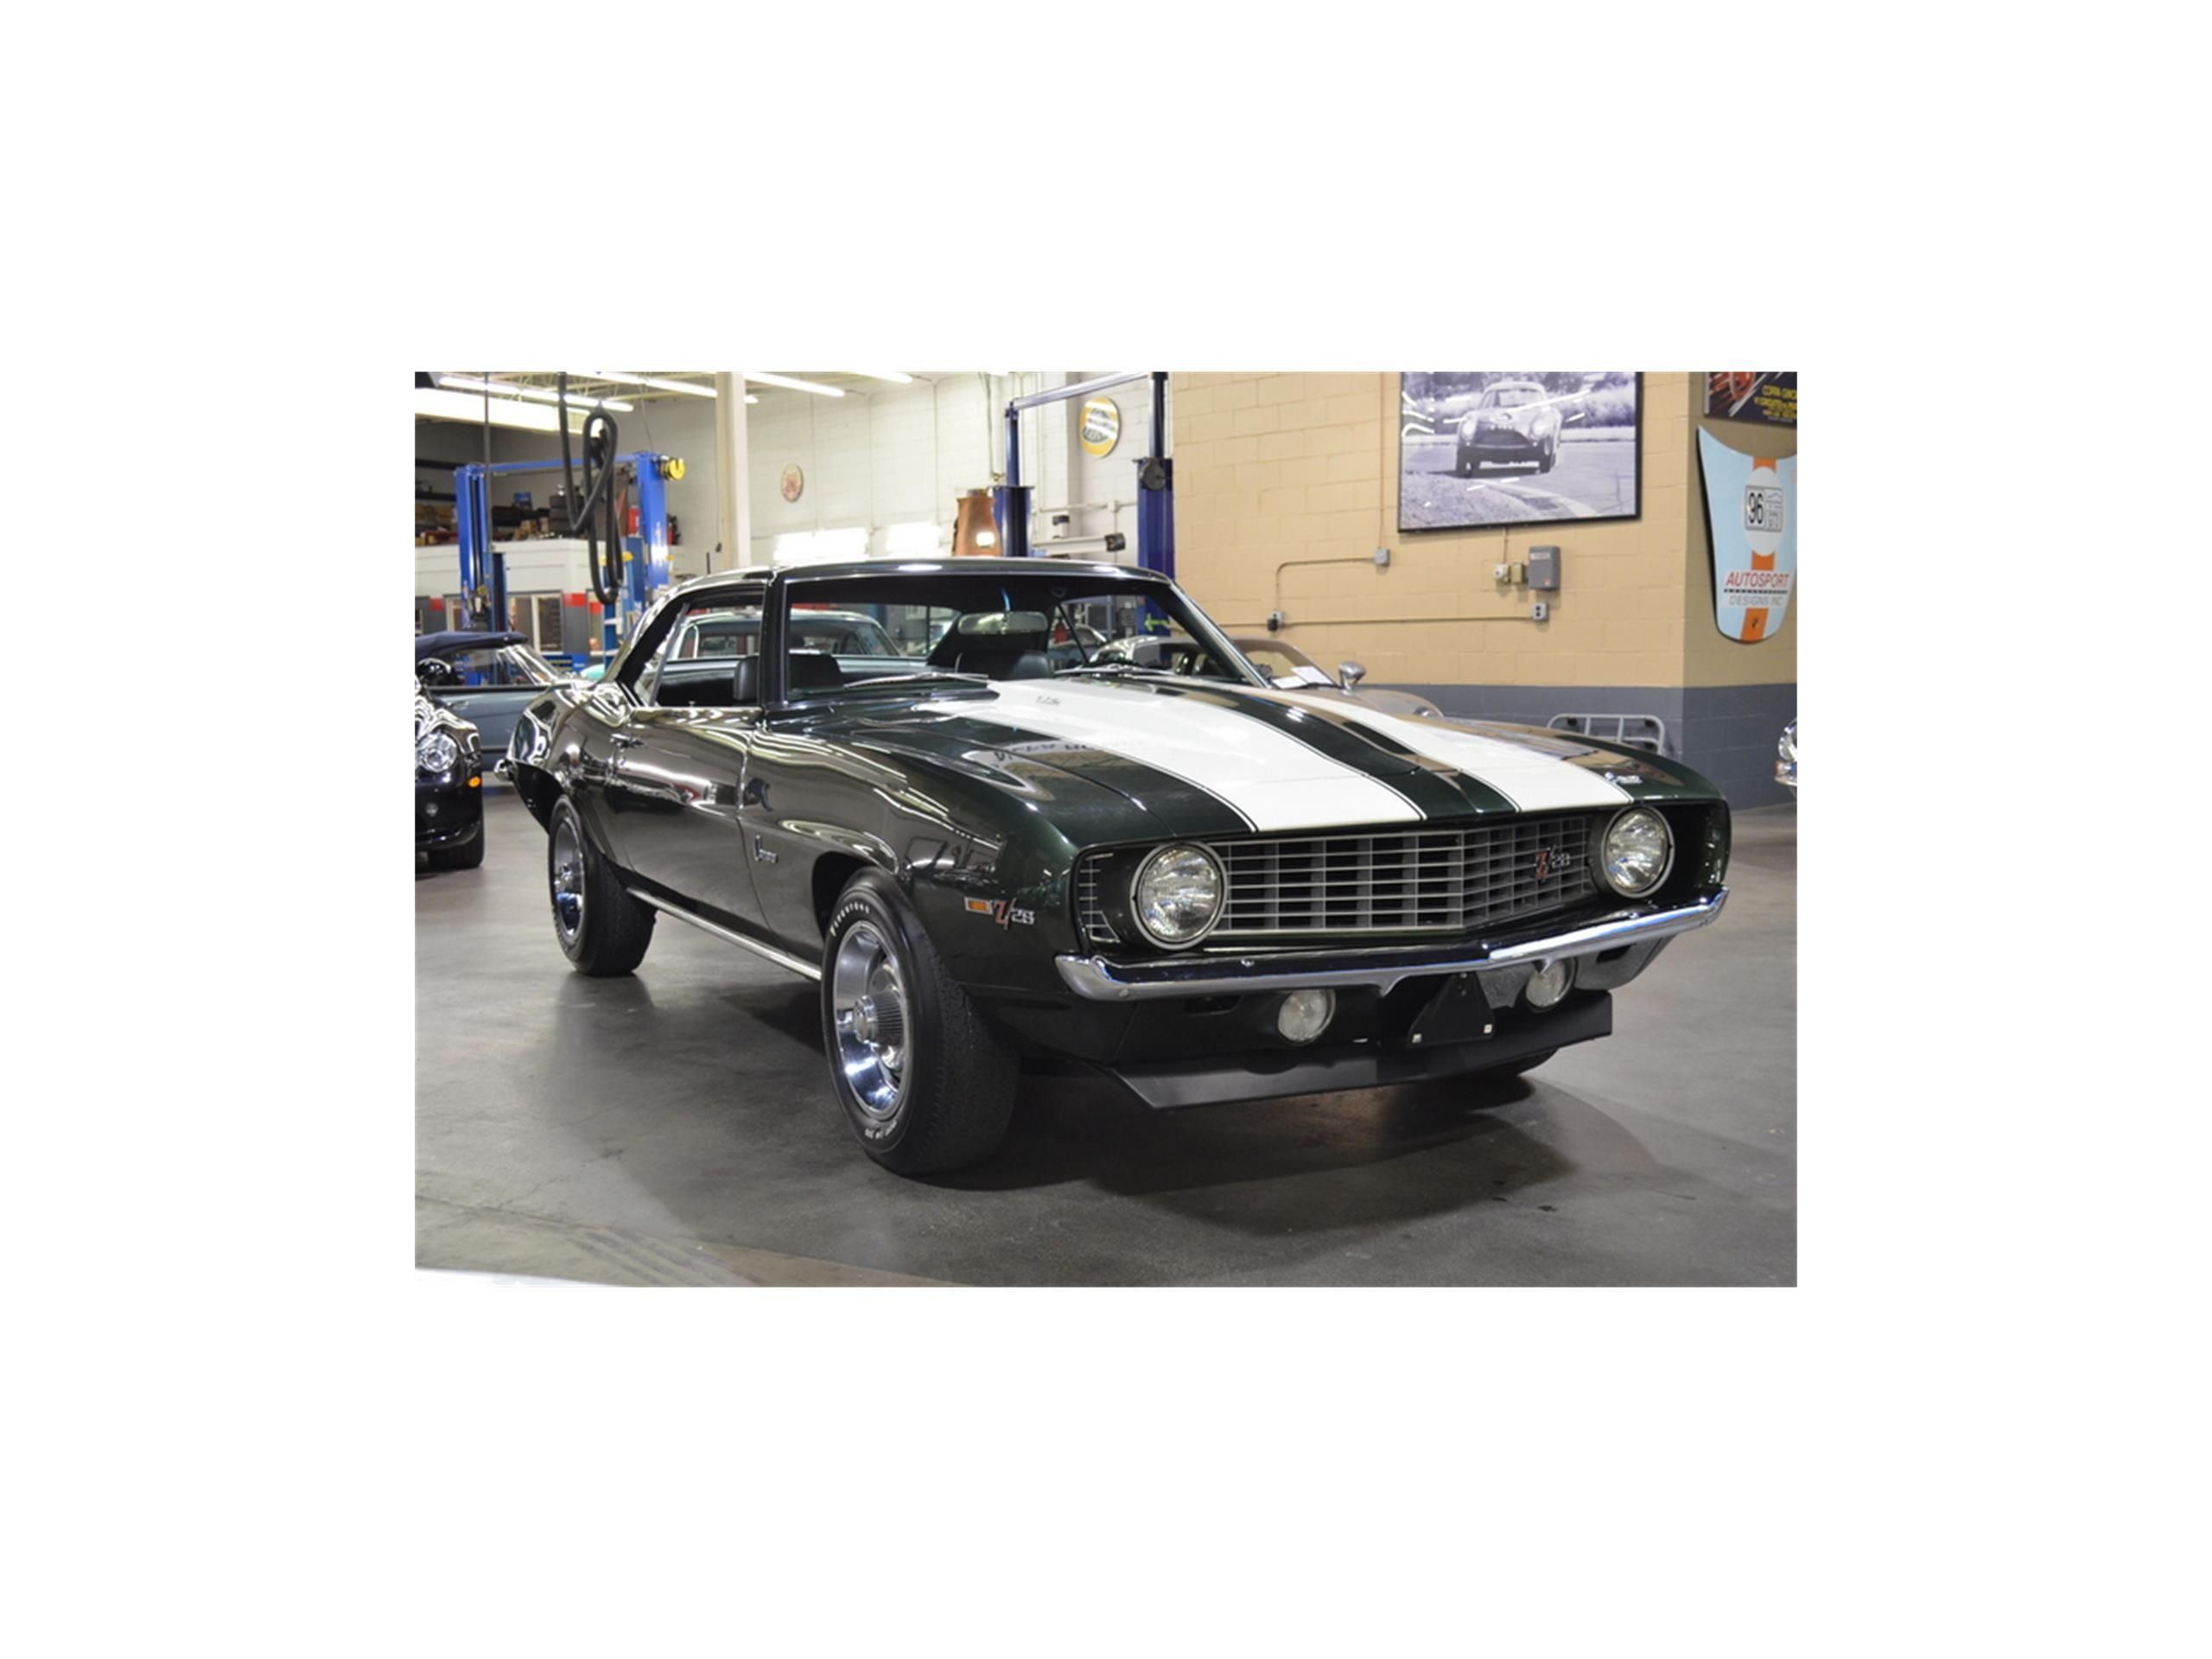 Large Photo Of Classic 1969 Chevrolet Camaro Z28 Offered By